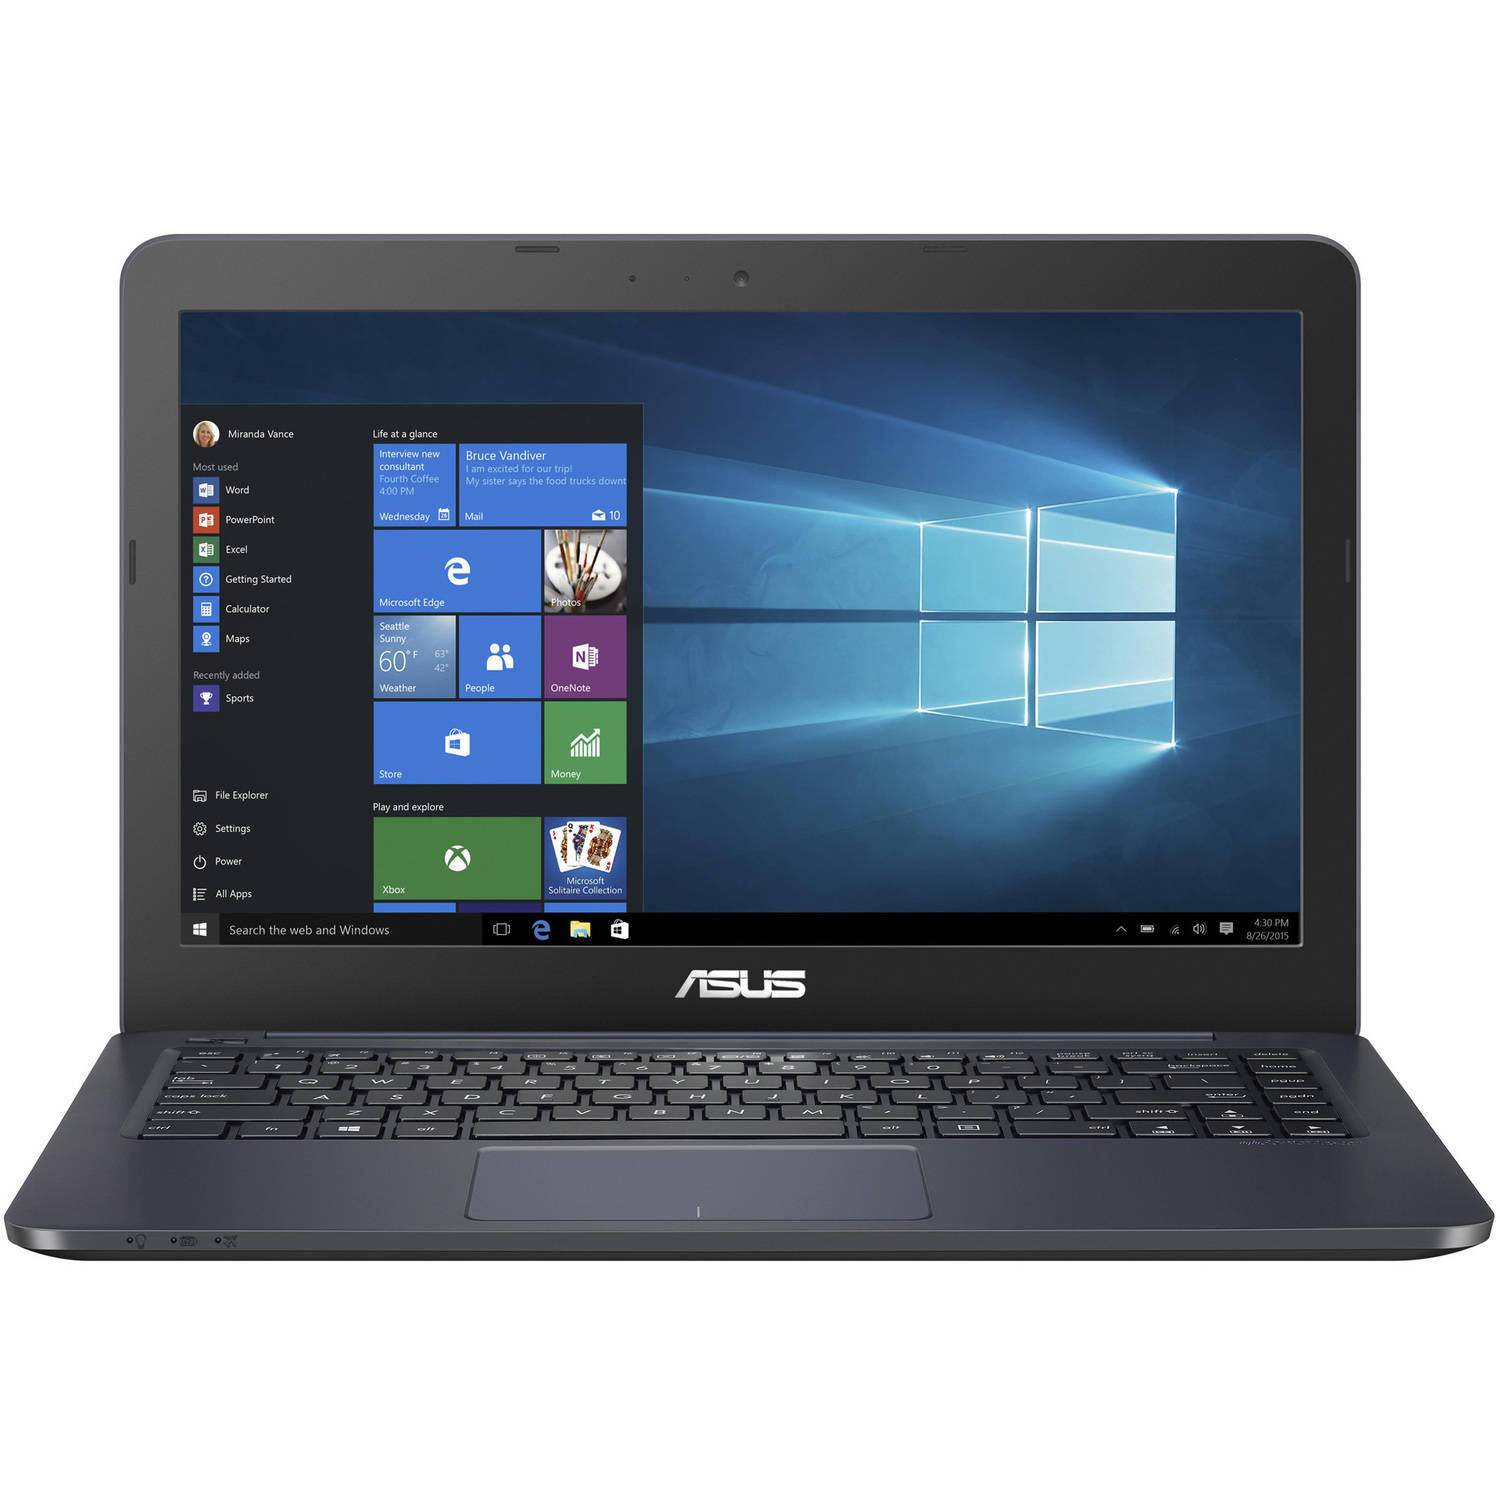 "ASUS L402 14"" Laptop, Windows 10, Office 365 Personal 1-year included, Intel Celeron N3060 Processor, 4GB RAM, 32GB eMMC Drive"